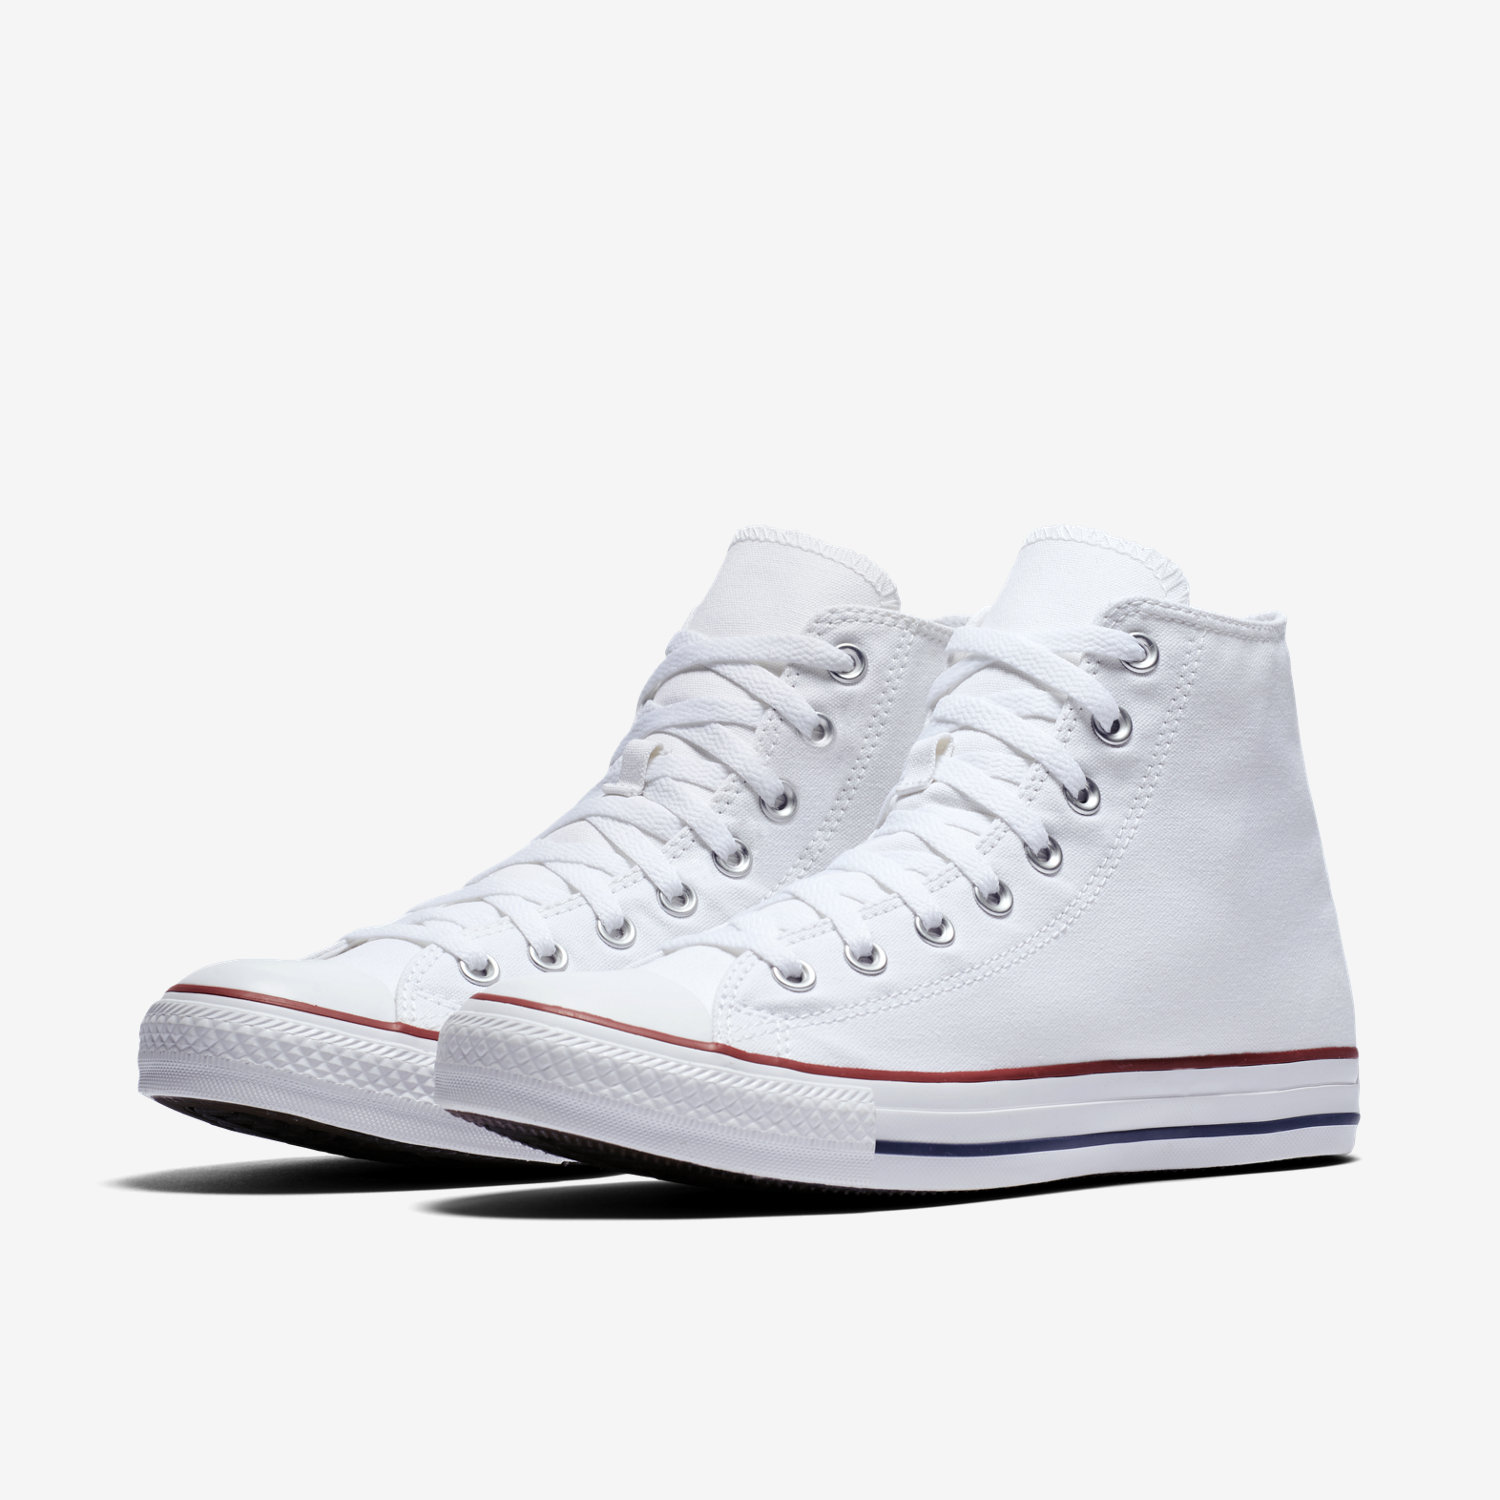 chuck taylor converse choose your pair of shoes. Black Bedroom Furniture Sets. Home Design Ideas